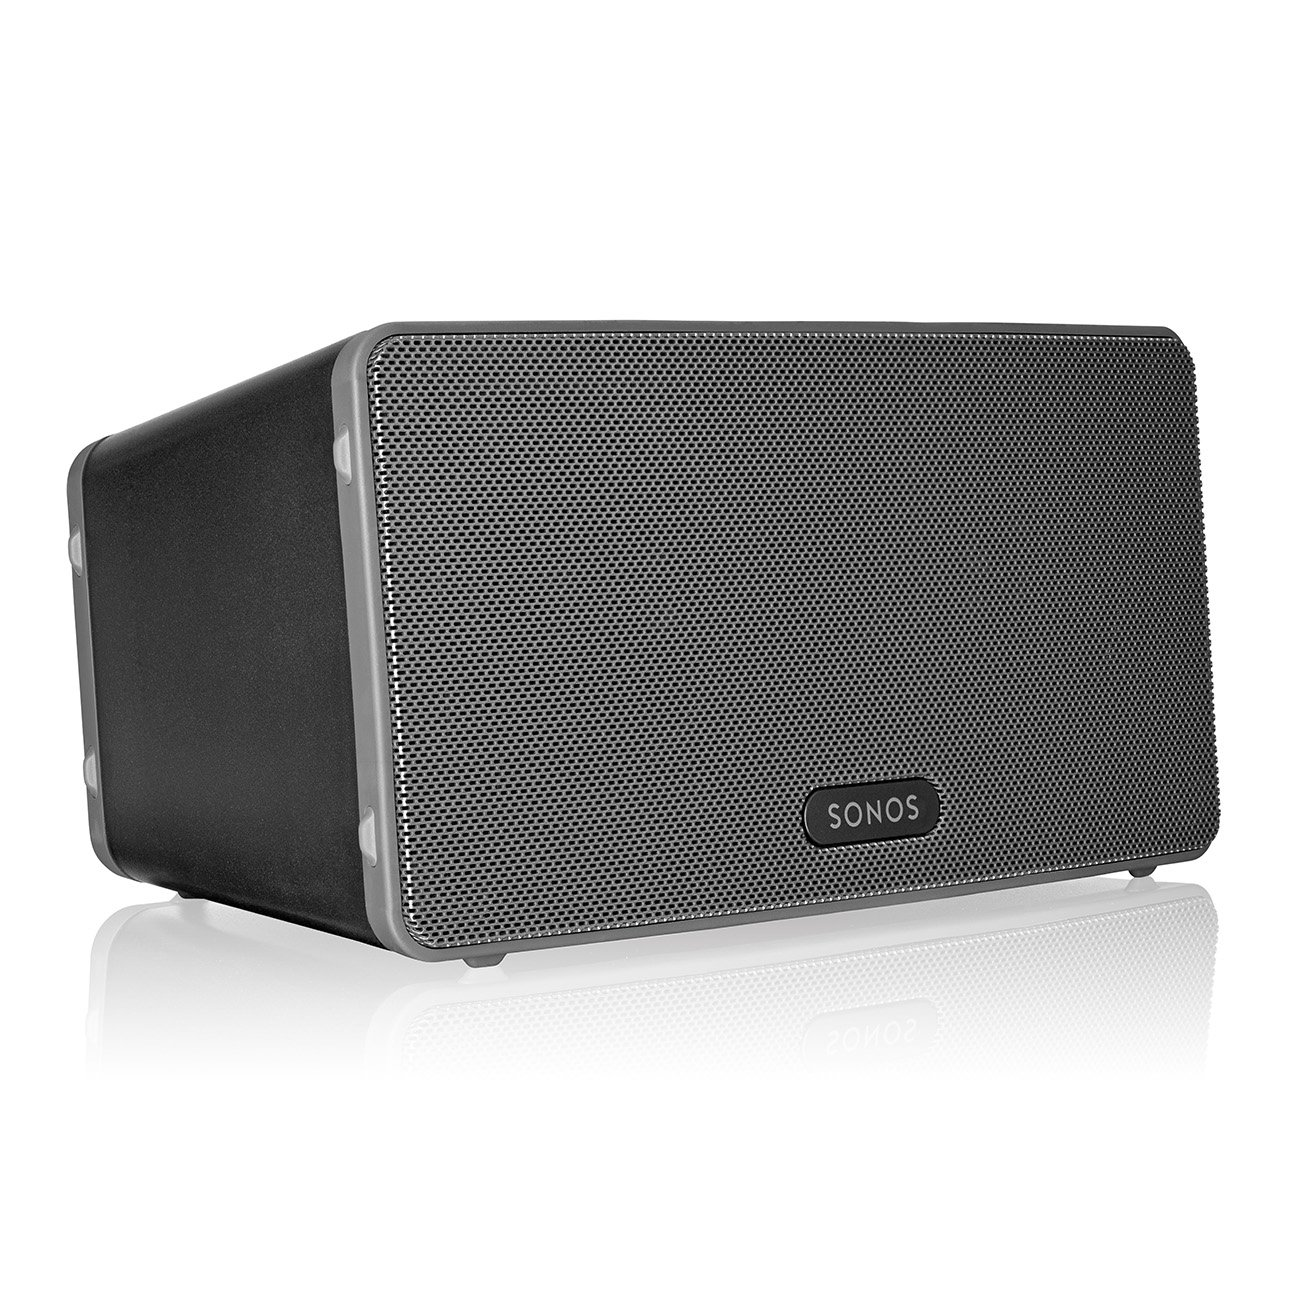 Sonos Play:3 - Mid-Sized Wireless Smart Home Speaker for Streaming Music, Amazon certified and works with Alexa. (Black) by Sonos